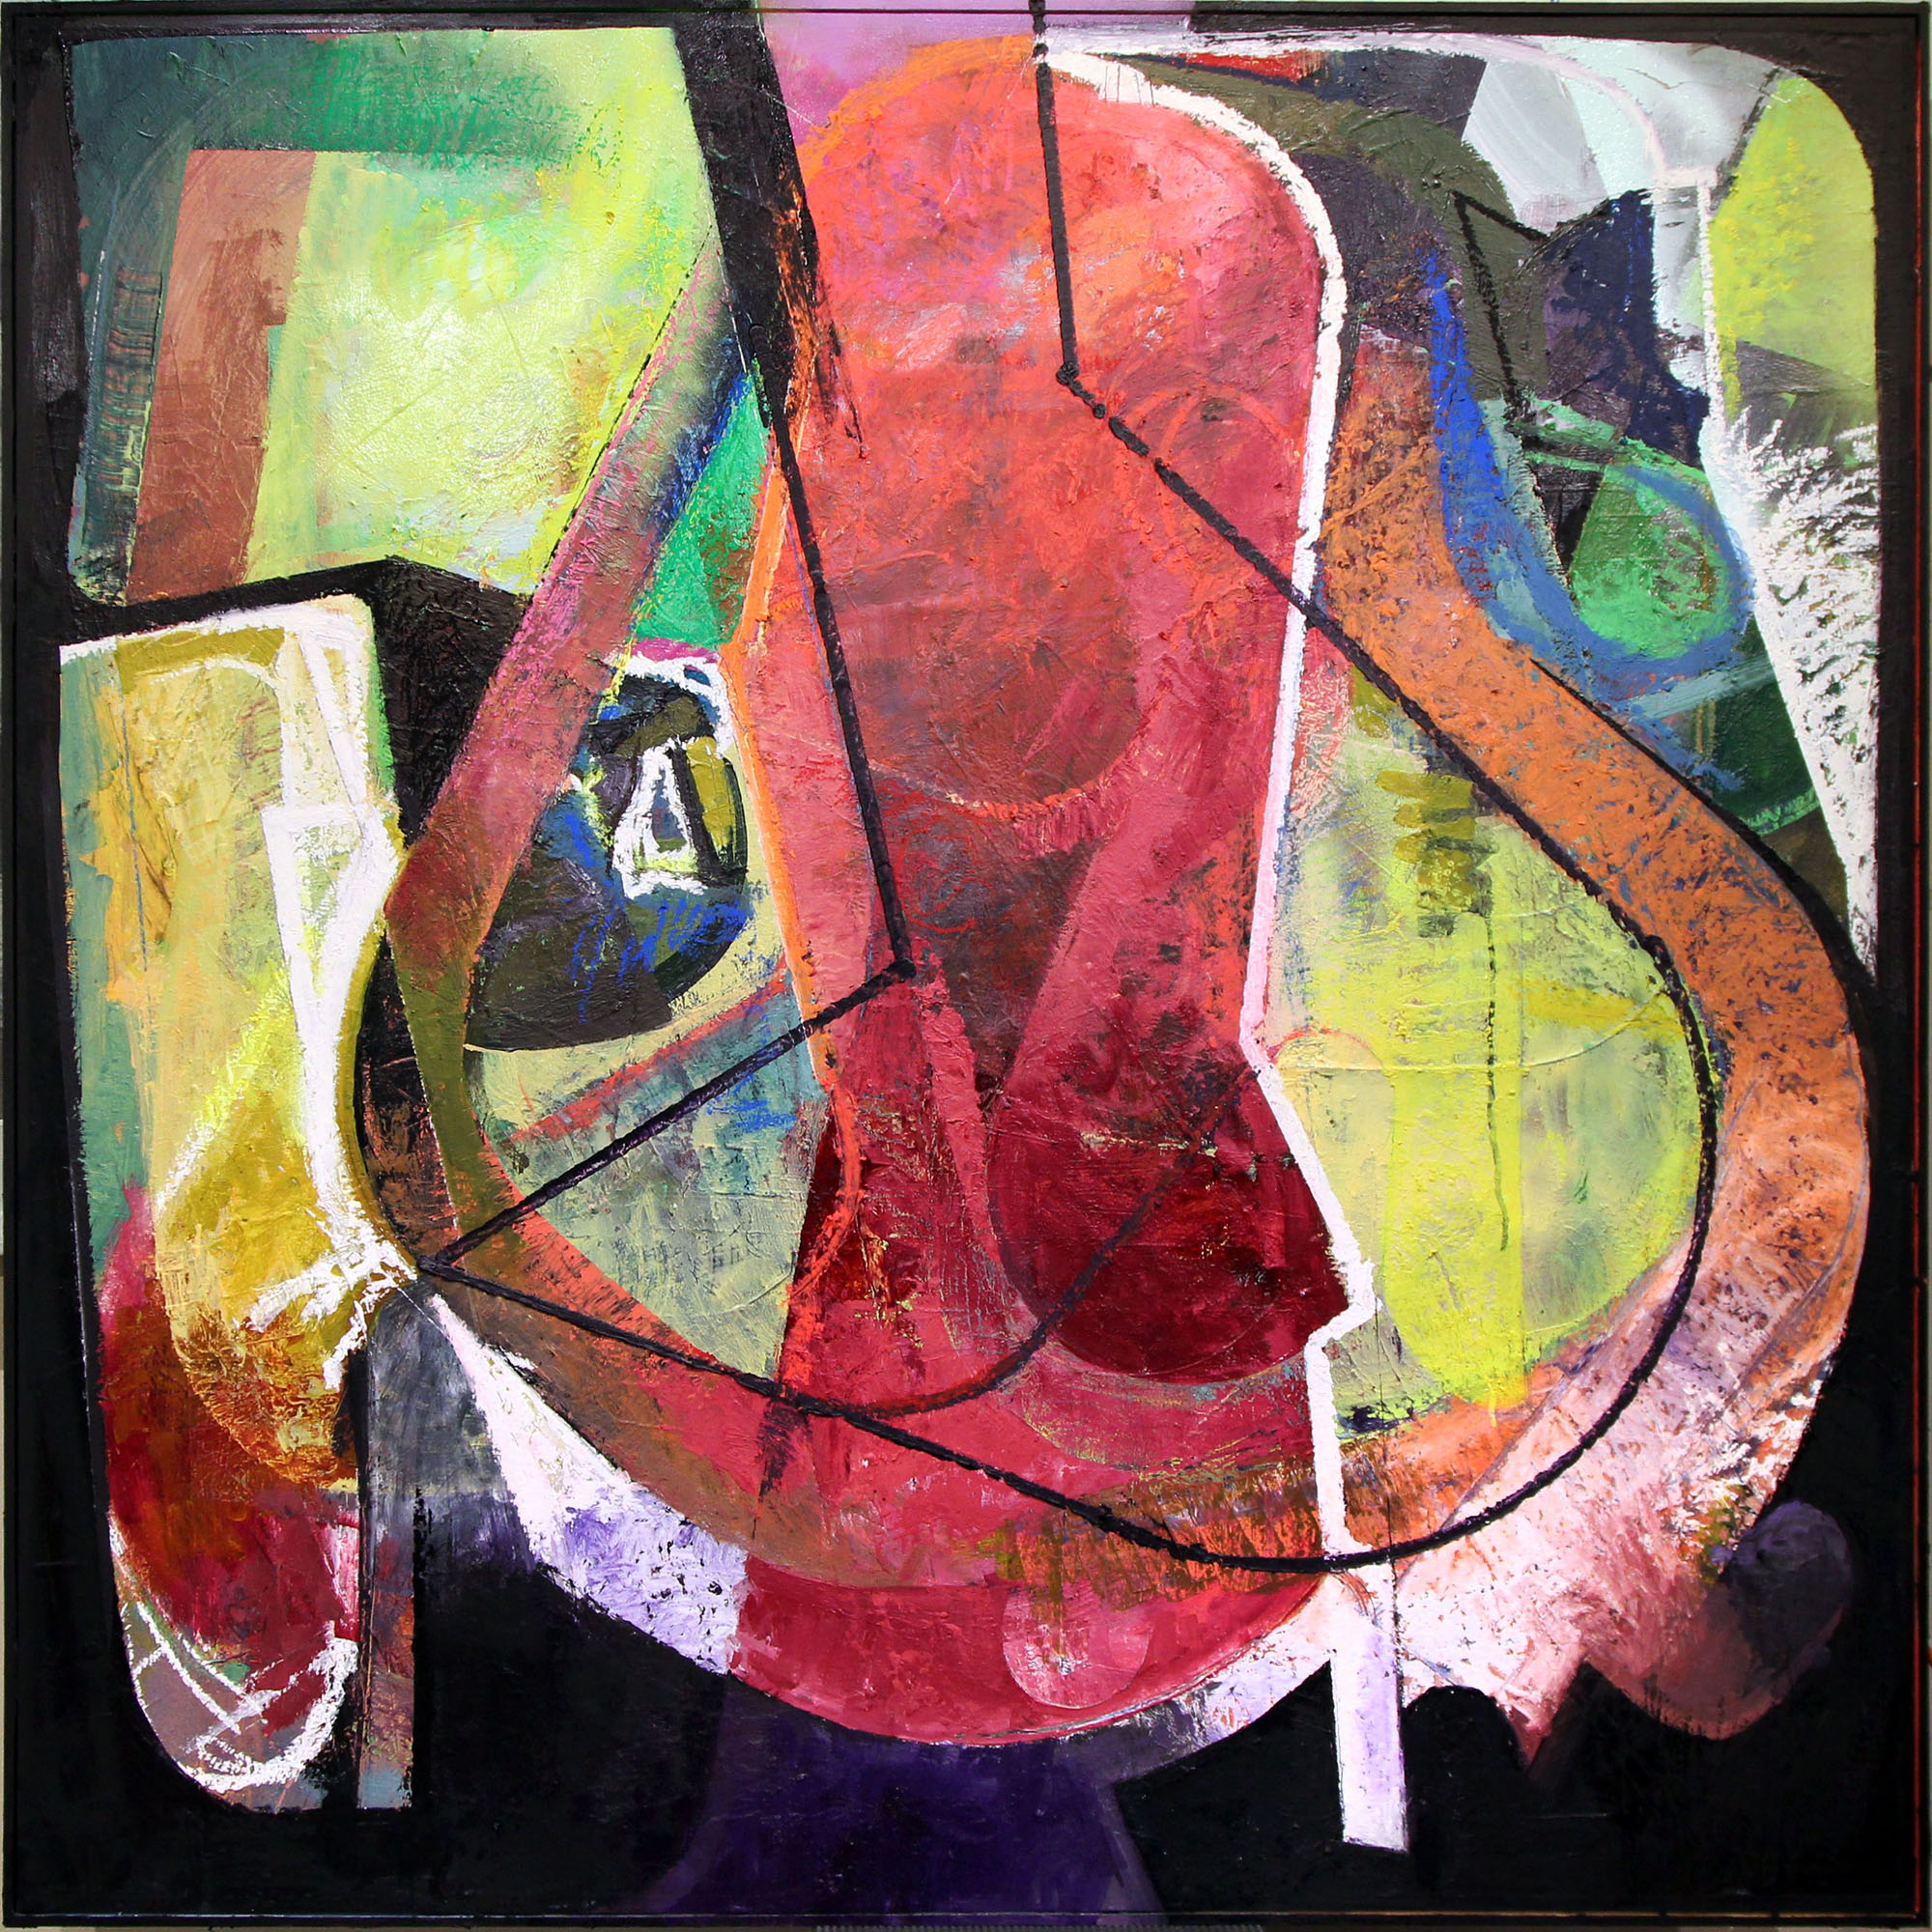 Strange Pas de Deux,  Mixed media on panel, 48 x 48, $2,400